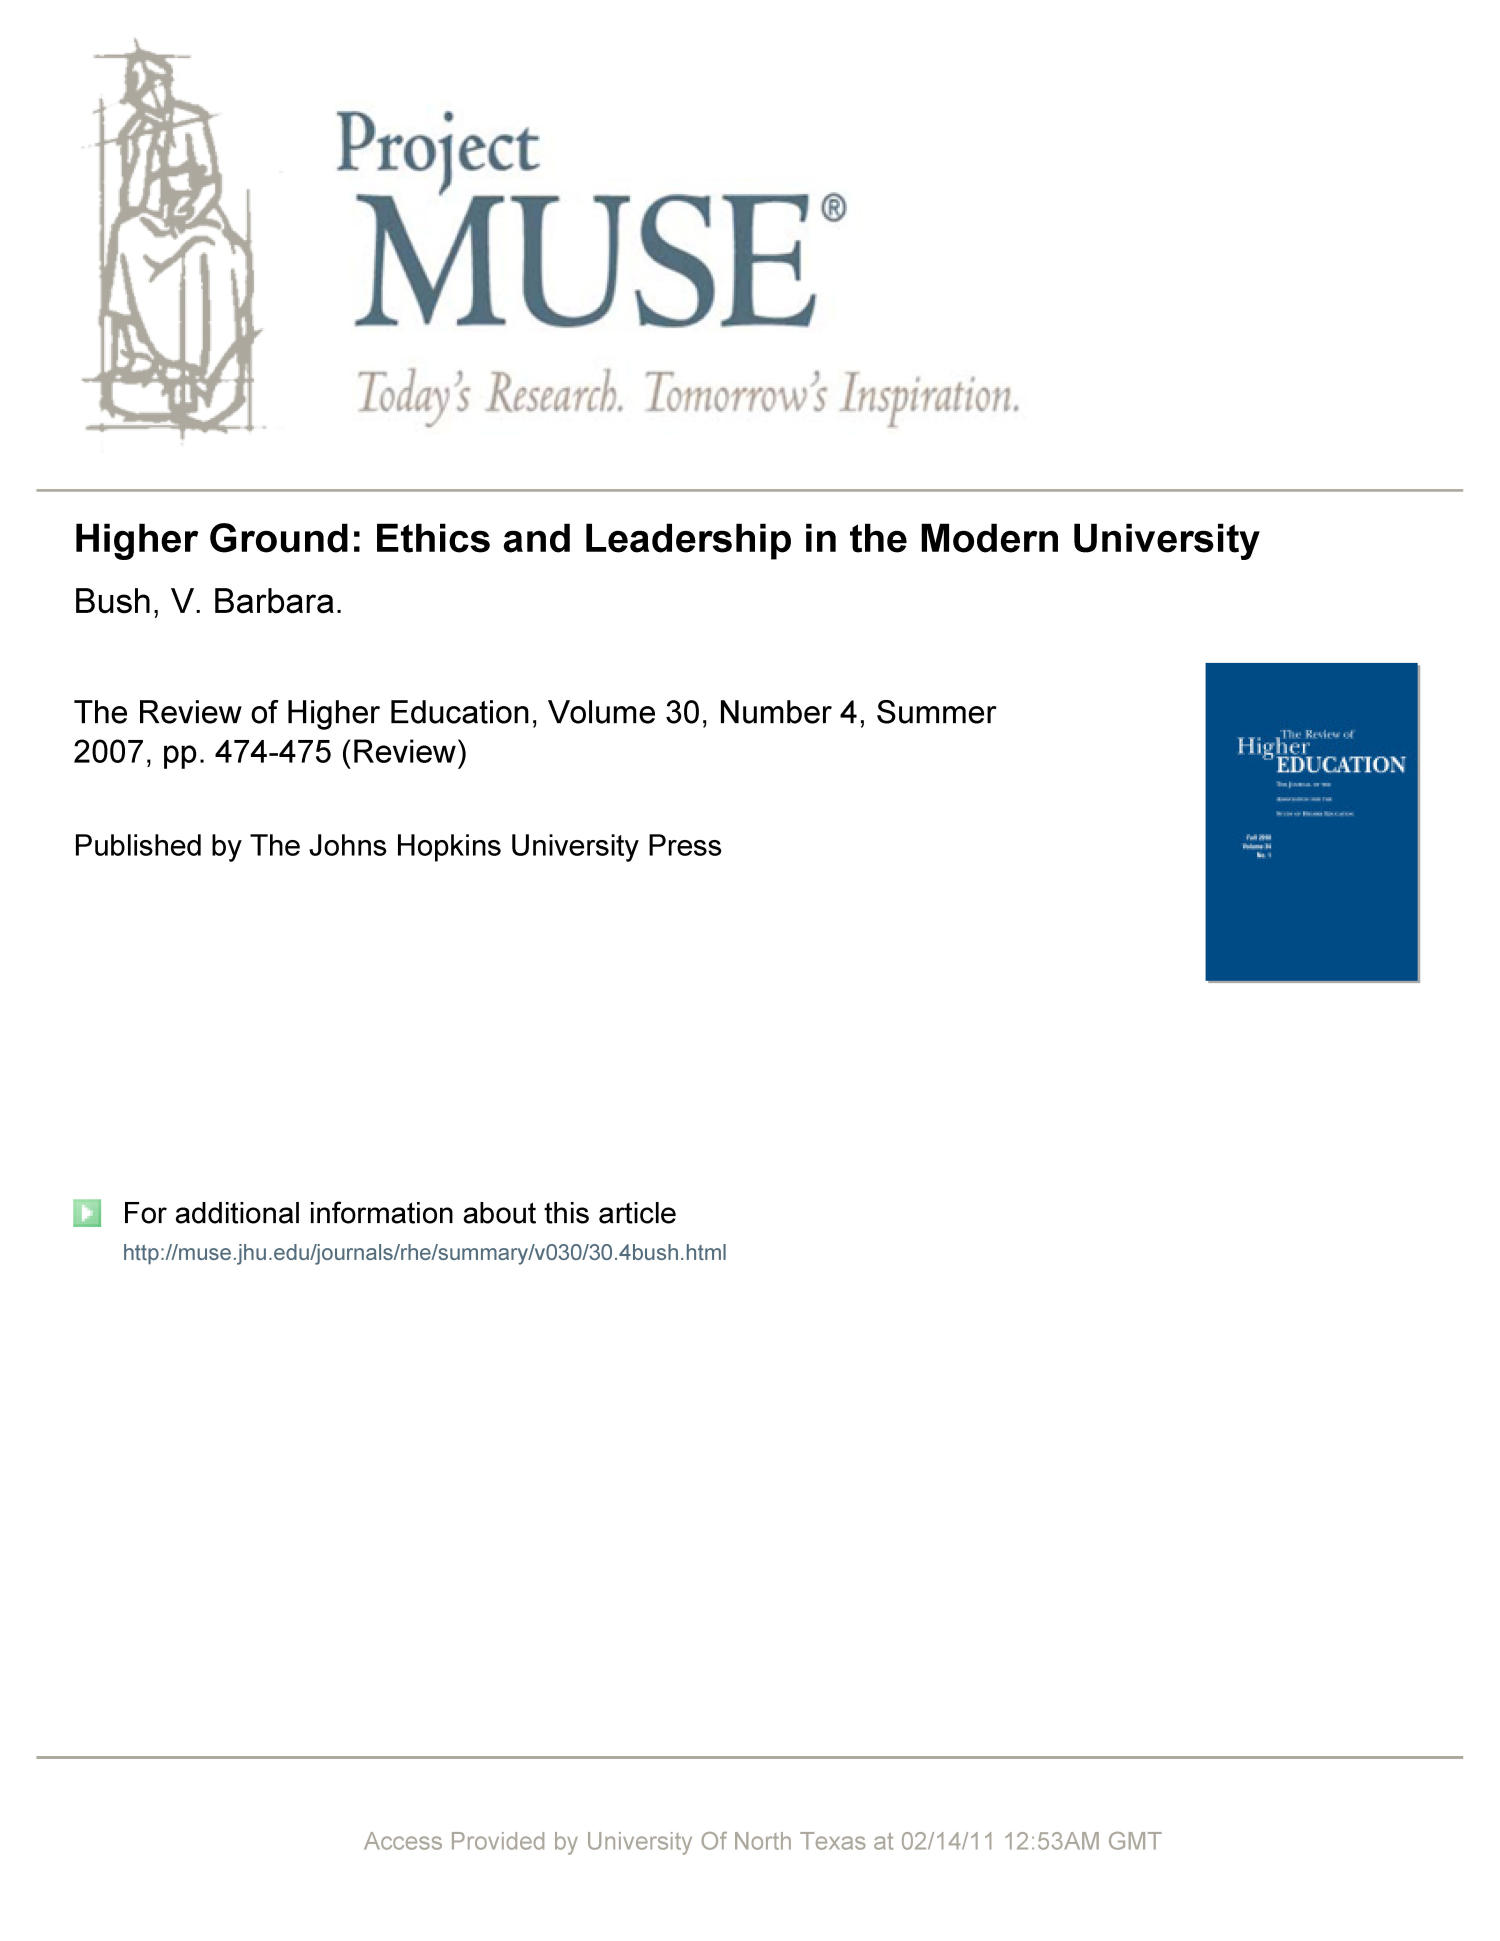 [Review] Higher Ground: Ethics and Leadership in the Modern University                                                                                                      473